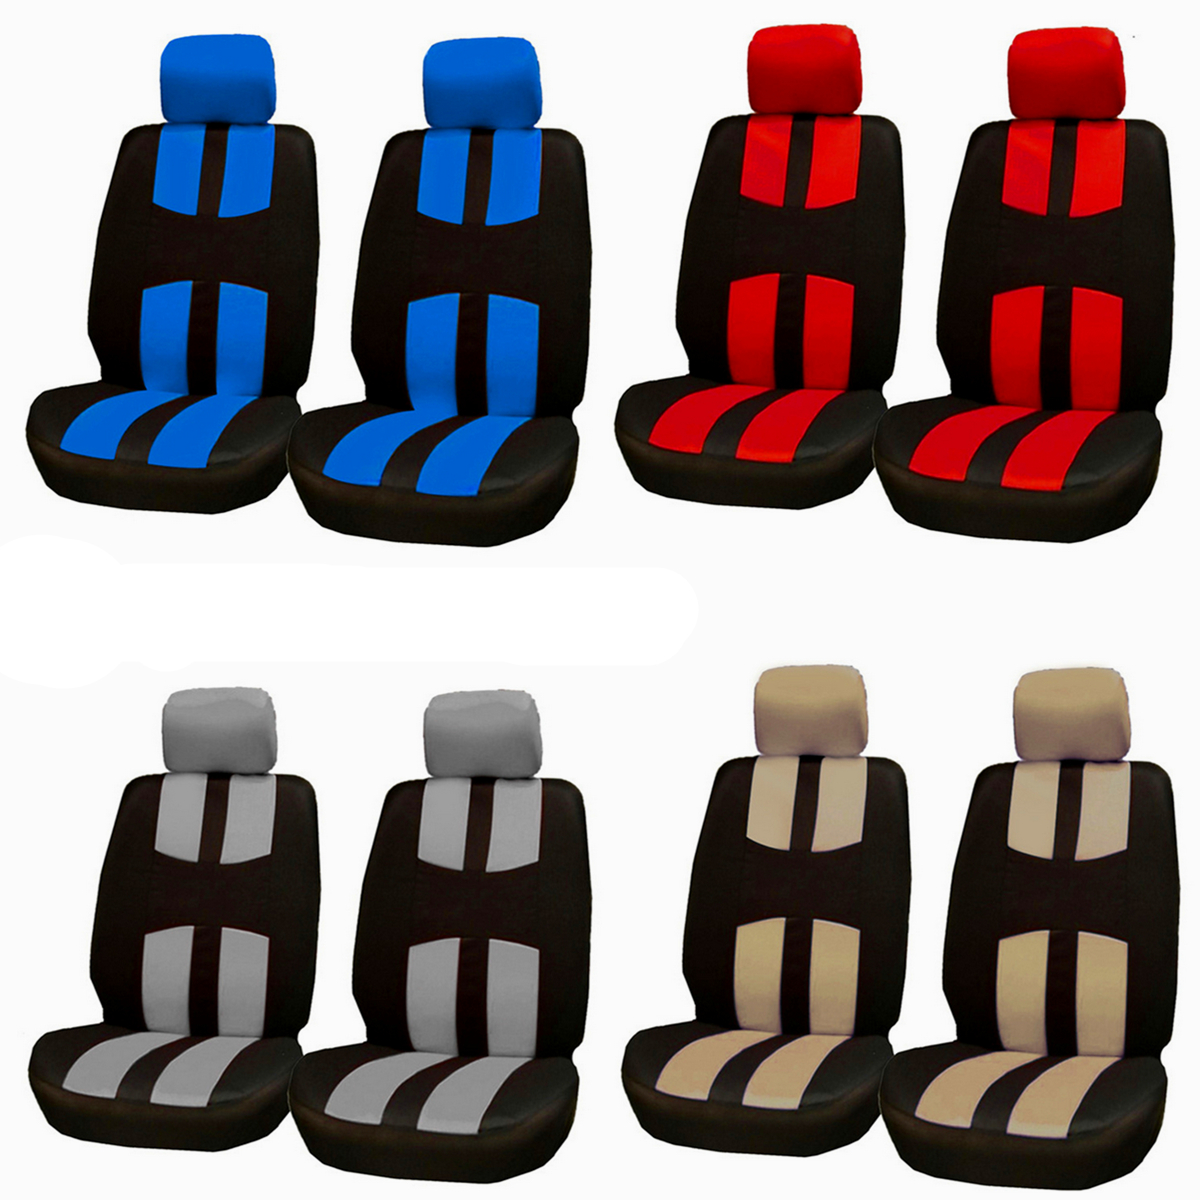 ECO LEATHER UNIVERSAL FRONT SEAT COVERS FITS VAUXHALL MOVANO UP TO 2010